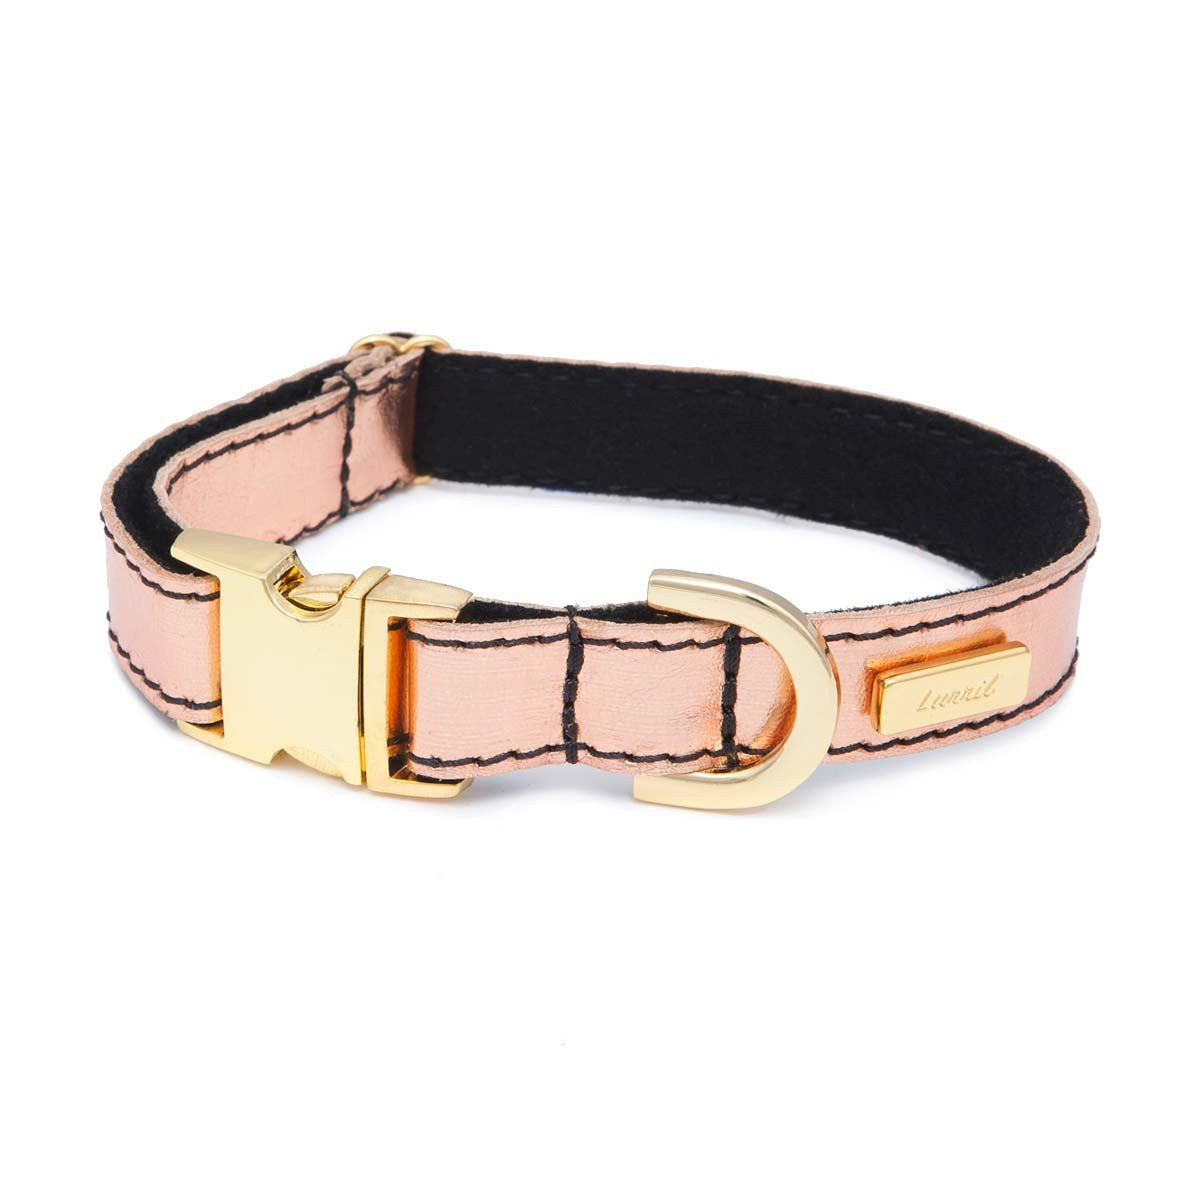 Rose Gold Soft Leather Dog Collar with Wool Felt Lining